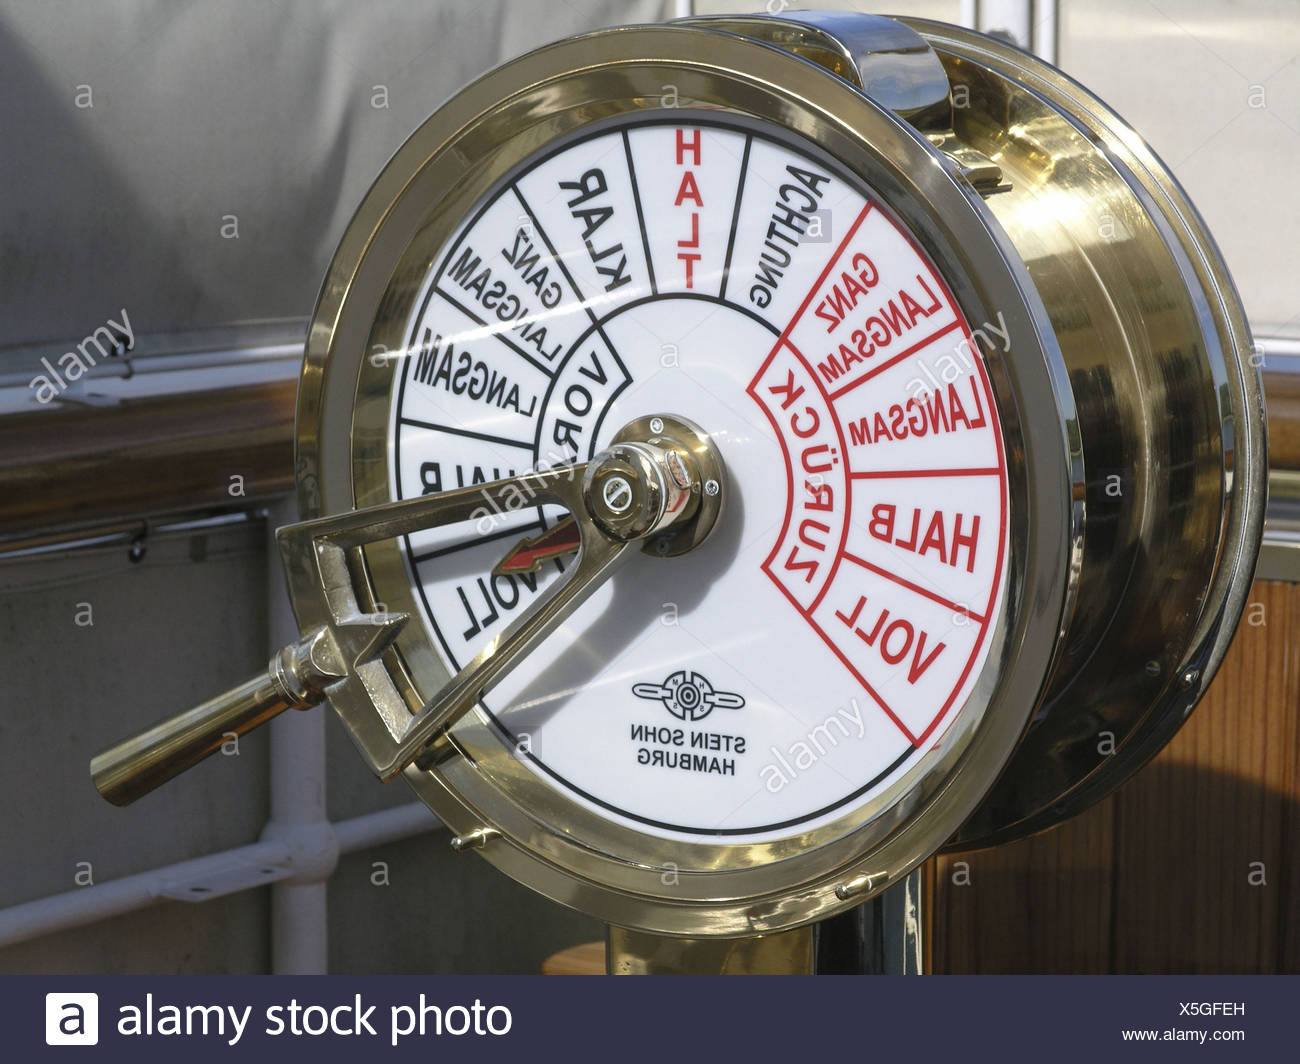 control detail DS Hohentwiel gas lever helm lake Lake of Constance